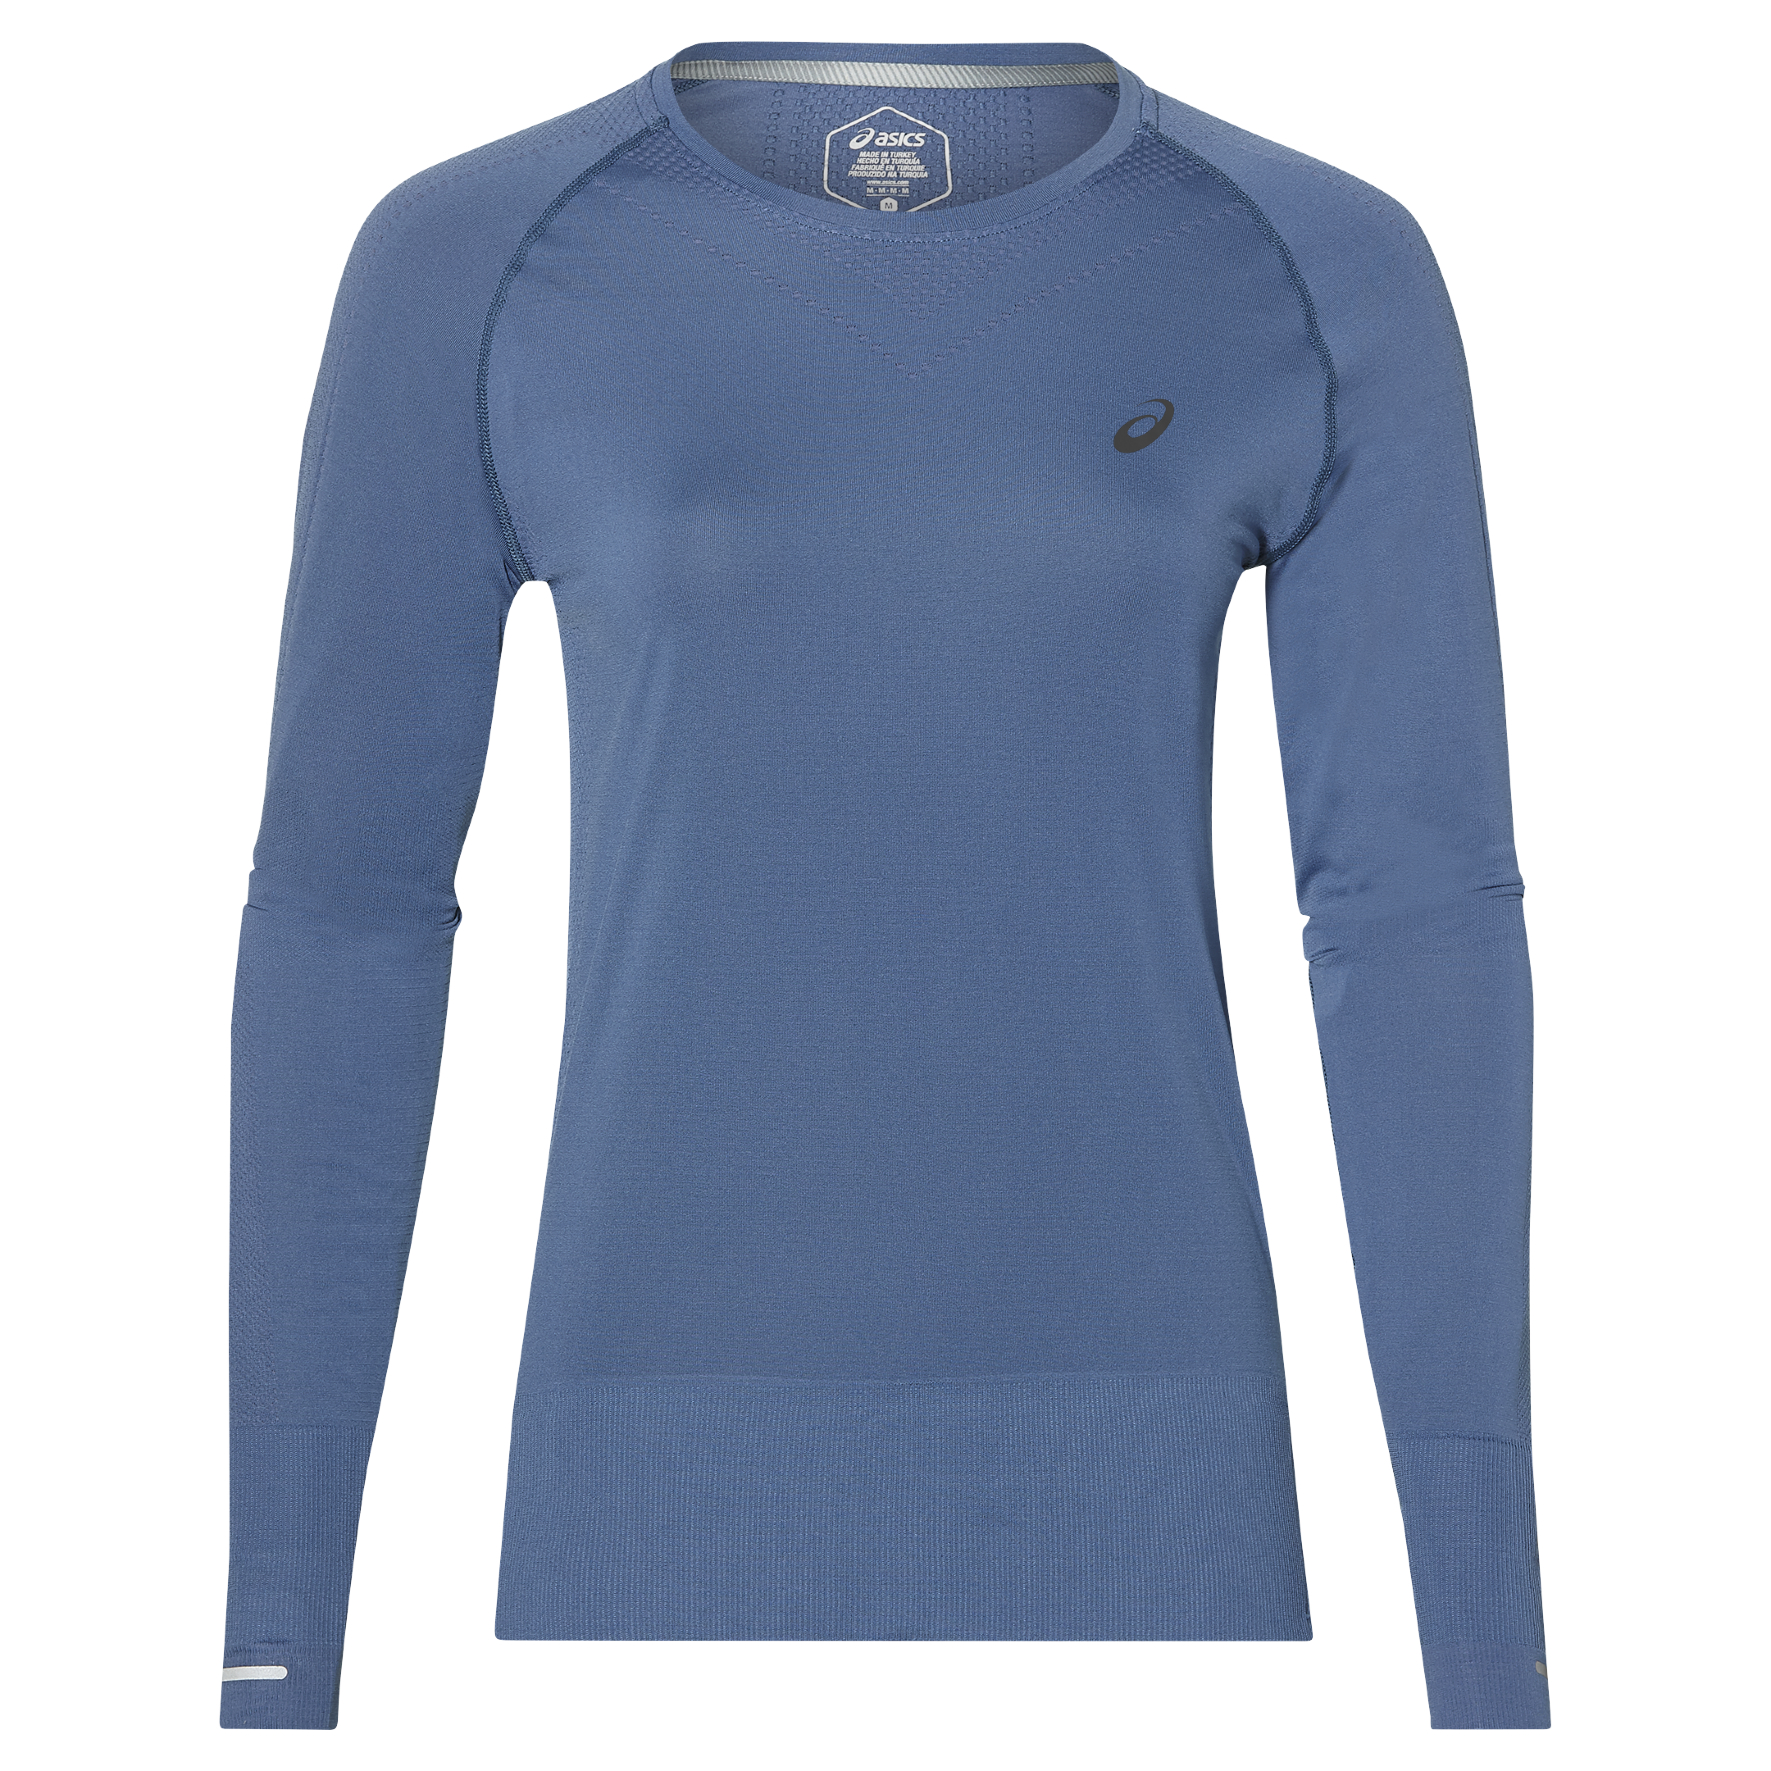 Asics Women's Seamless Long Sleeve | Jerseys